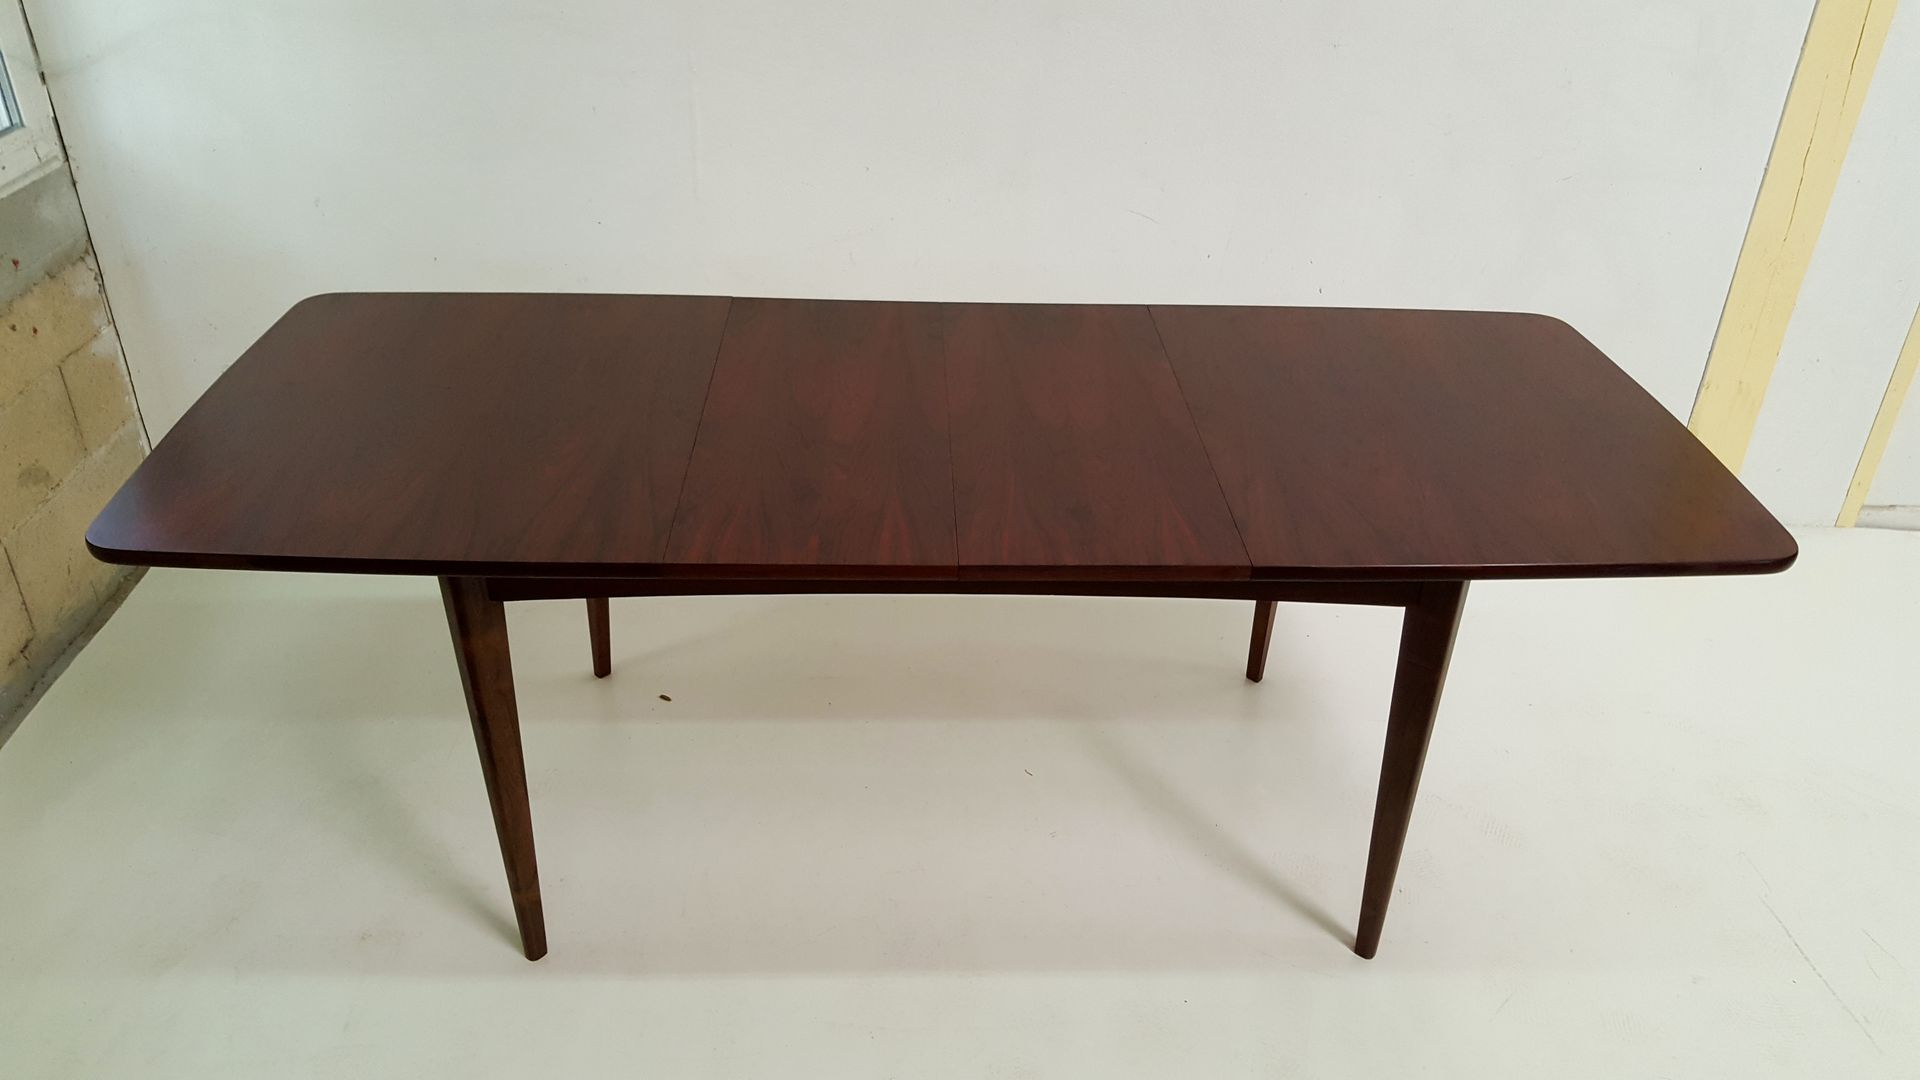 Scandinavian Dining Table in Rosewood 1960s for sale at  : scandinavian dining table in rosewood 1960s 2 from www.pamono.com size 1920 x 1080 jpeg 70kB